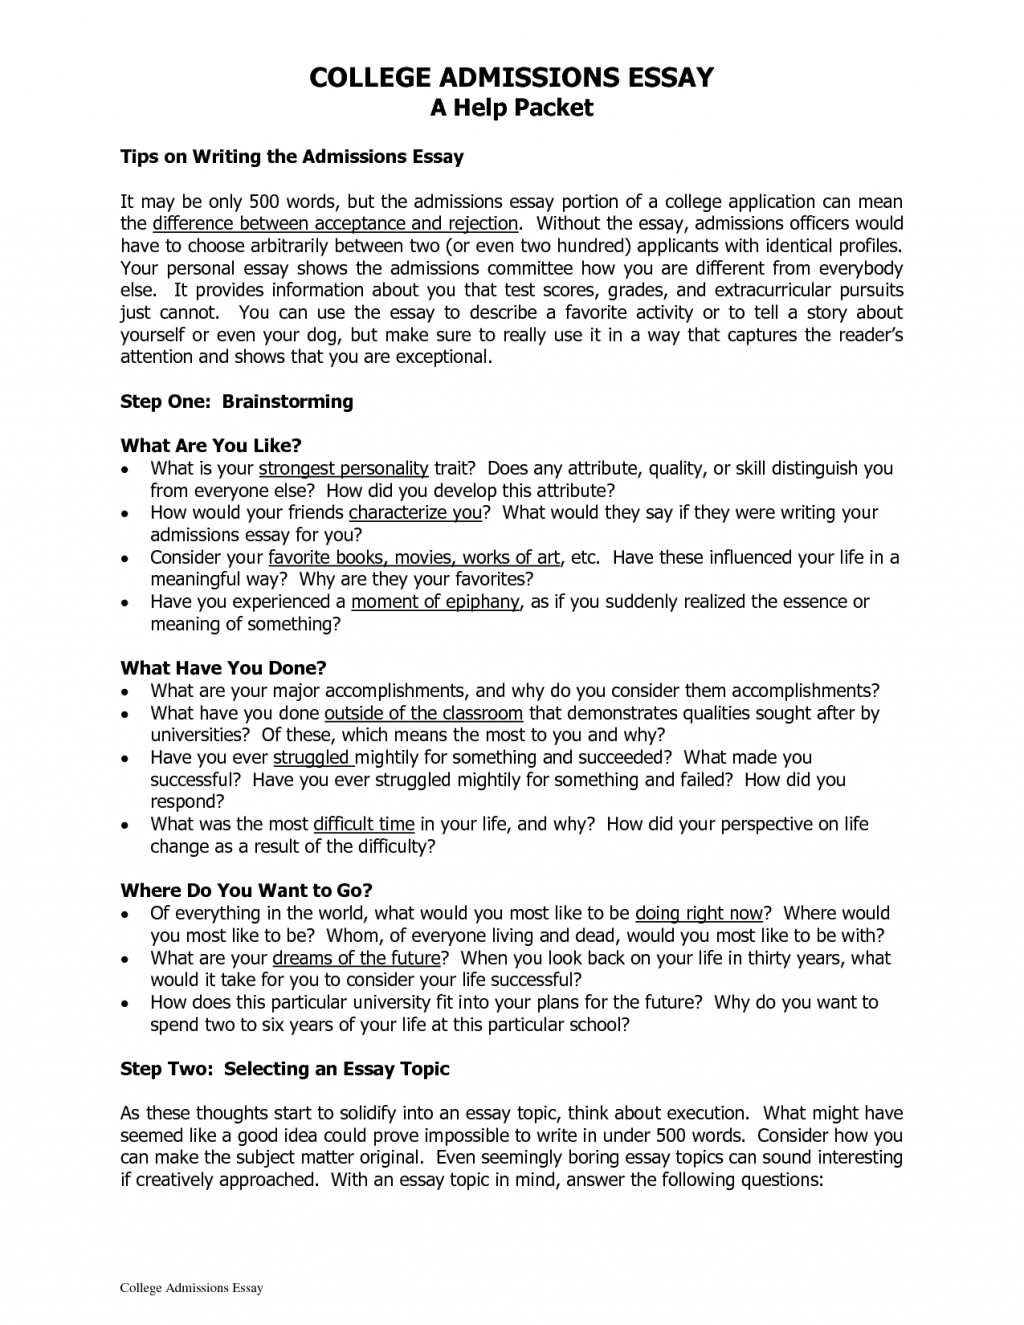 006 Essay Example College Application Examples Writings Andsays Template Writing Successful About How To Sta Yourself Structure Samples Harvard Words Pdf Admission Rare Prompts Format Ivy League Large